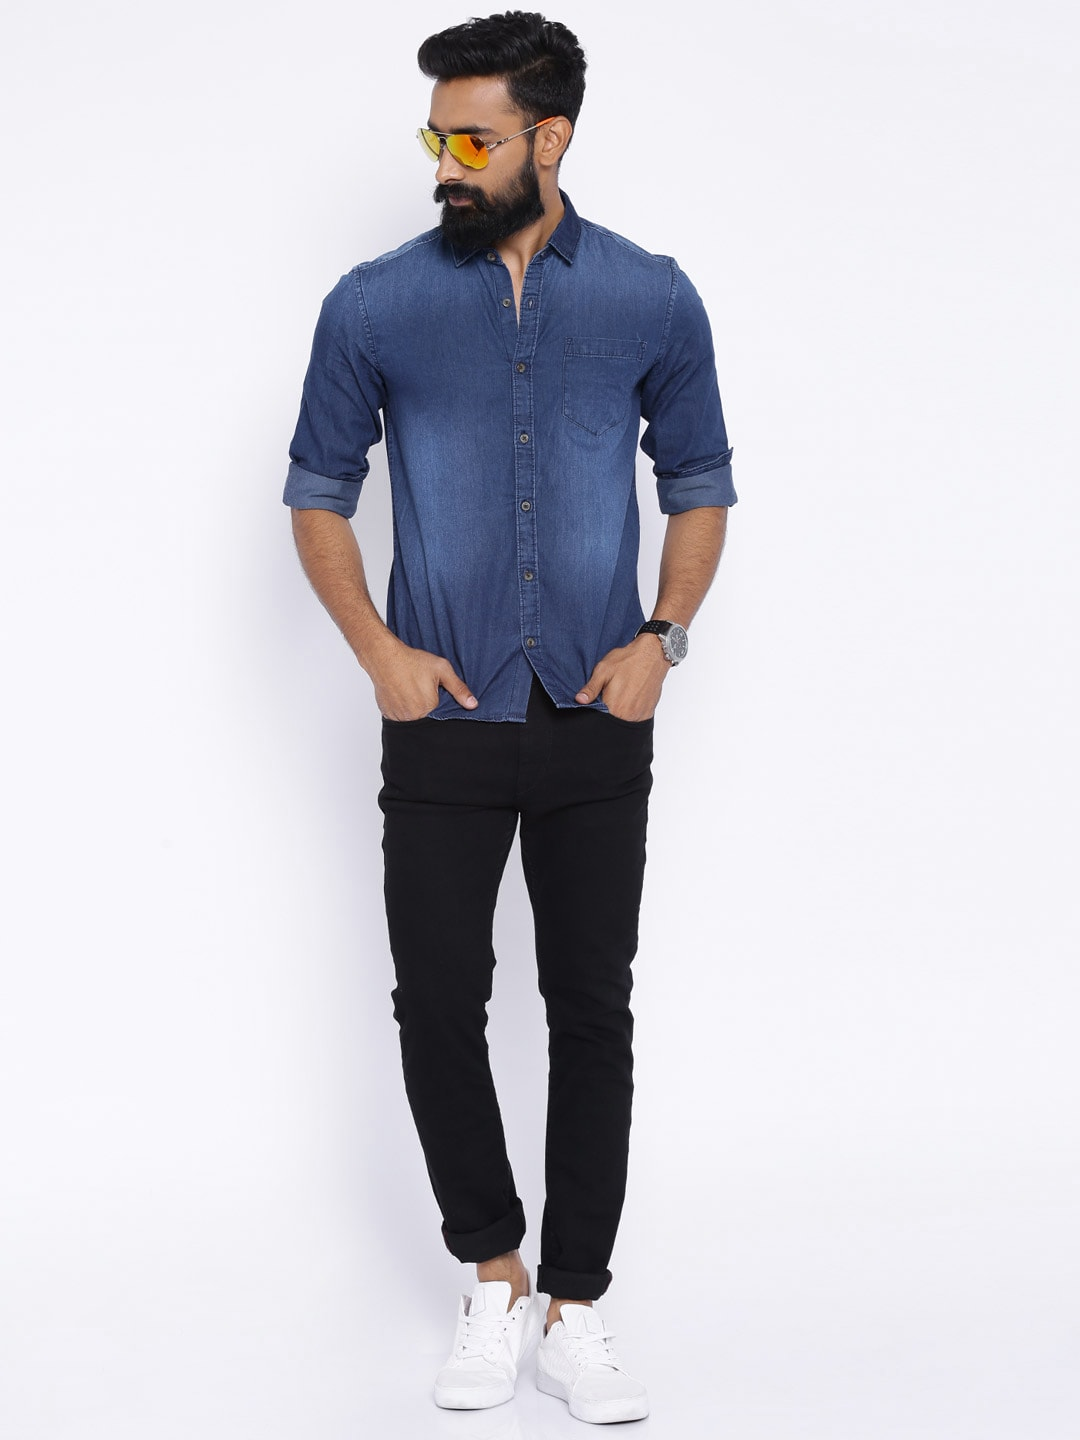 Black denim shirt mens t shirts design concept Black shirt blue jeans